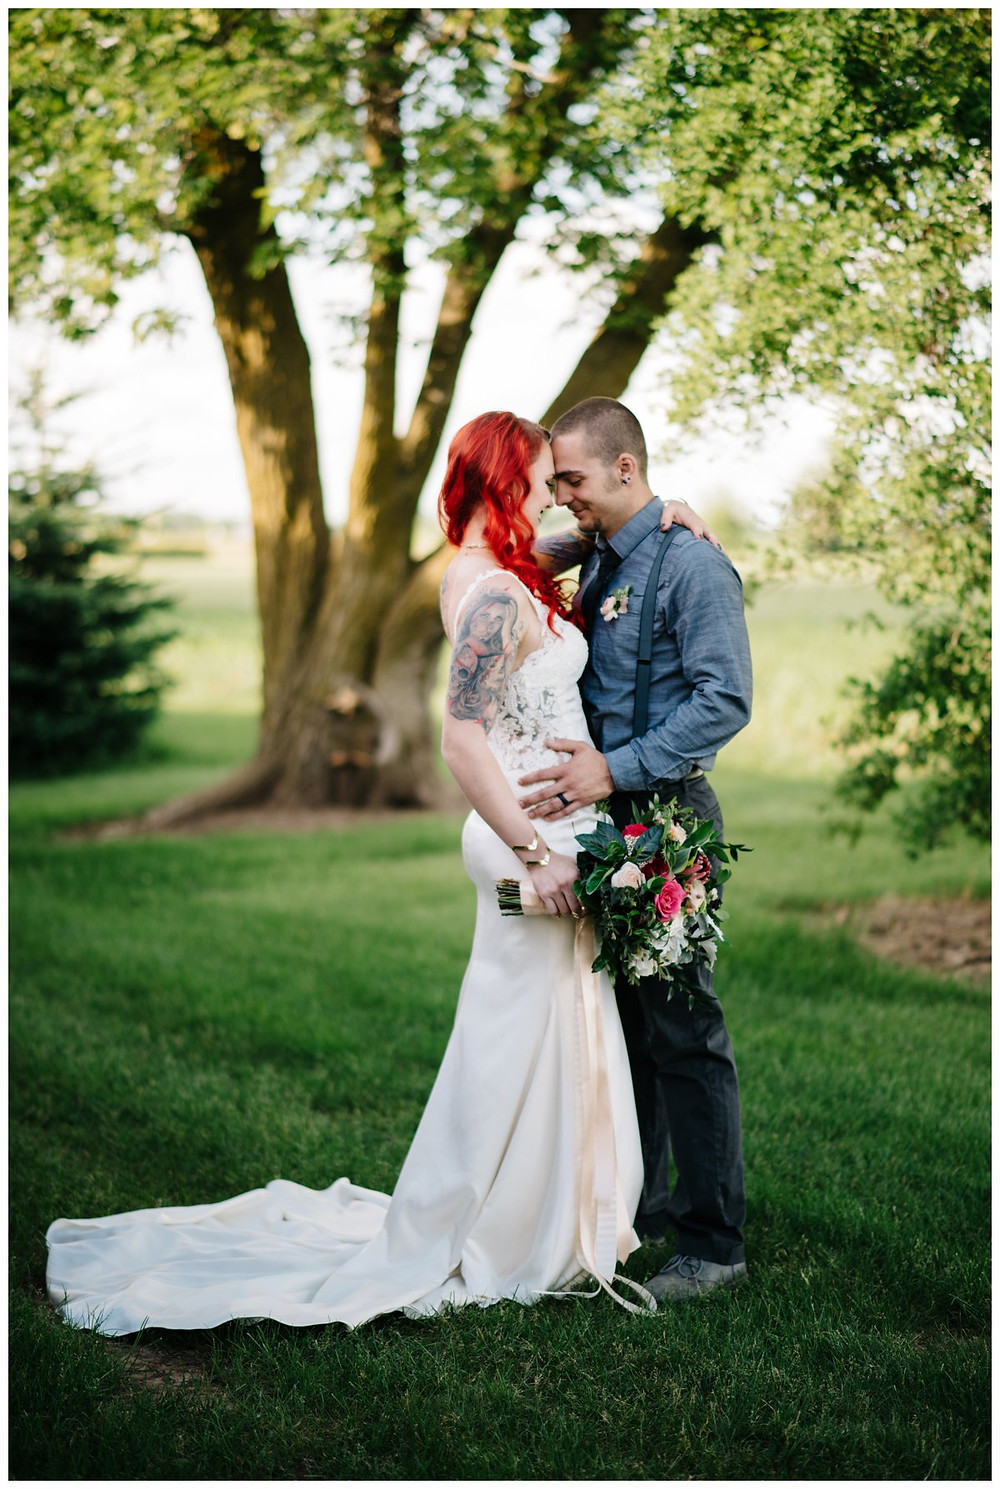 bride-and-groom-together-at-homestead-meadows-styled-shoot-by-appleton-wedding-photographer-kyra-rane-photography